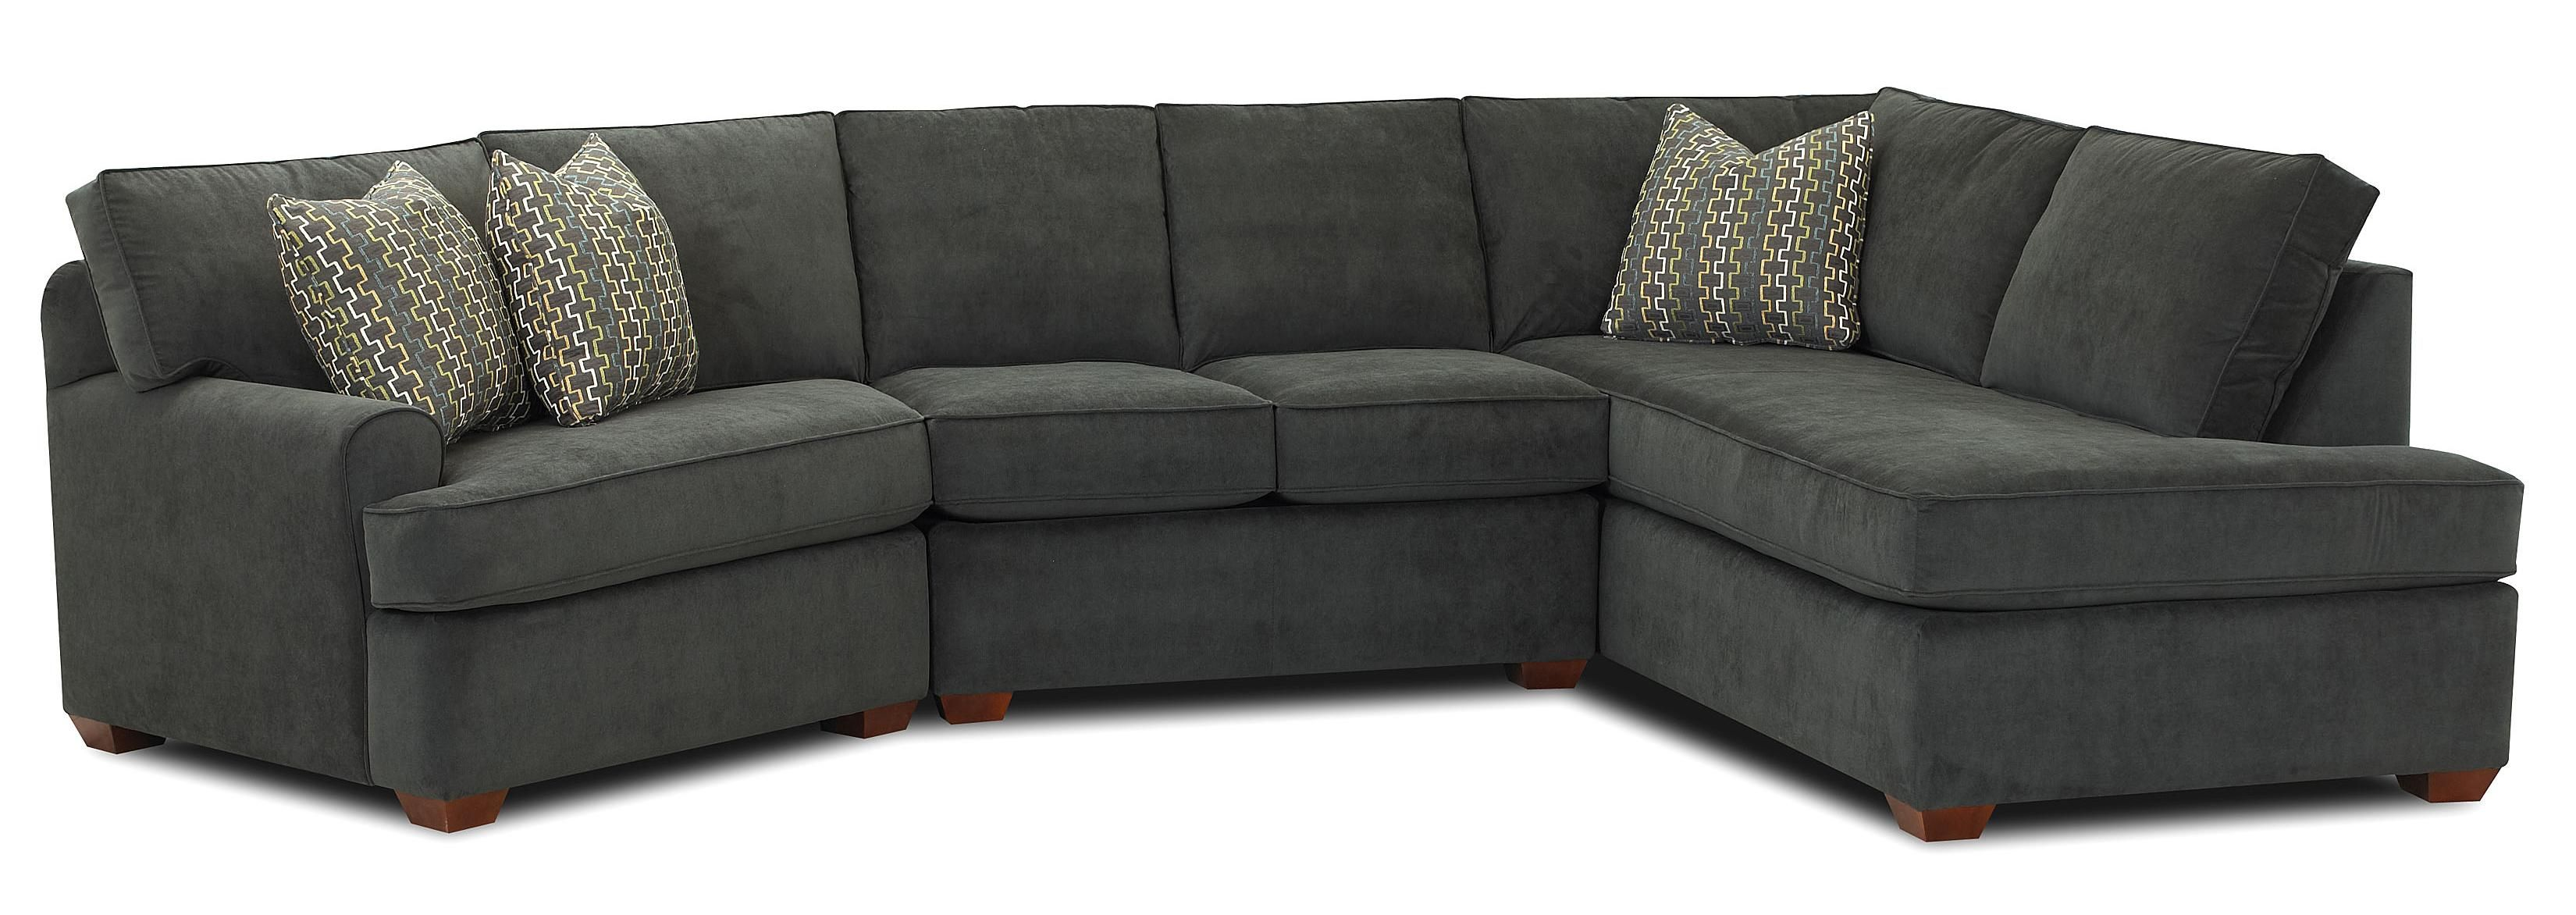 Hybrid Sectional Sofa with Right Facing Sofa Chaise by Klaussner